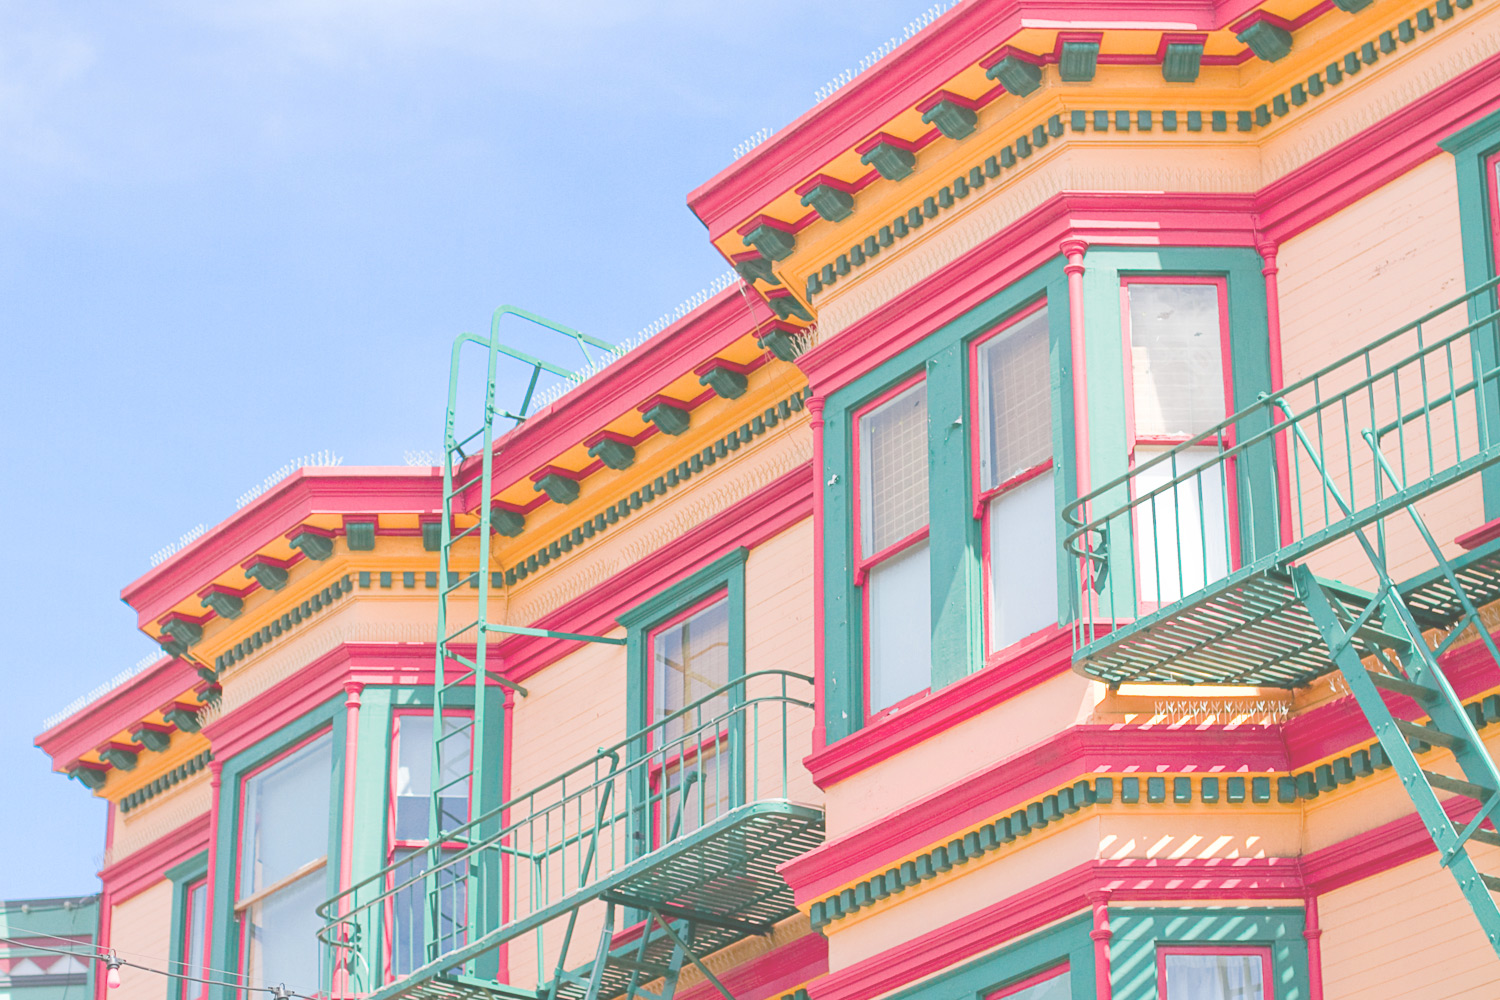 San Francisco by Anne-Solange Tardy 2